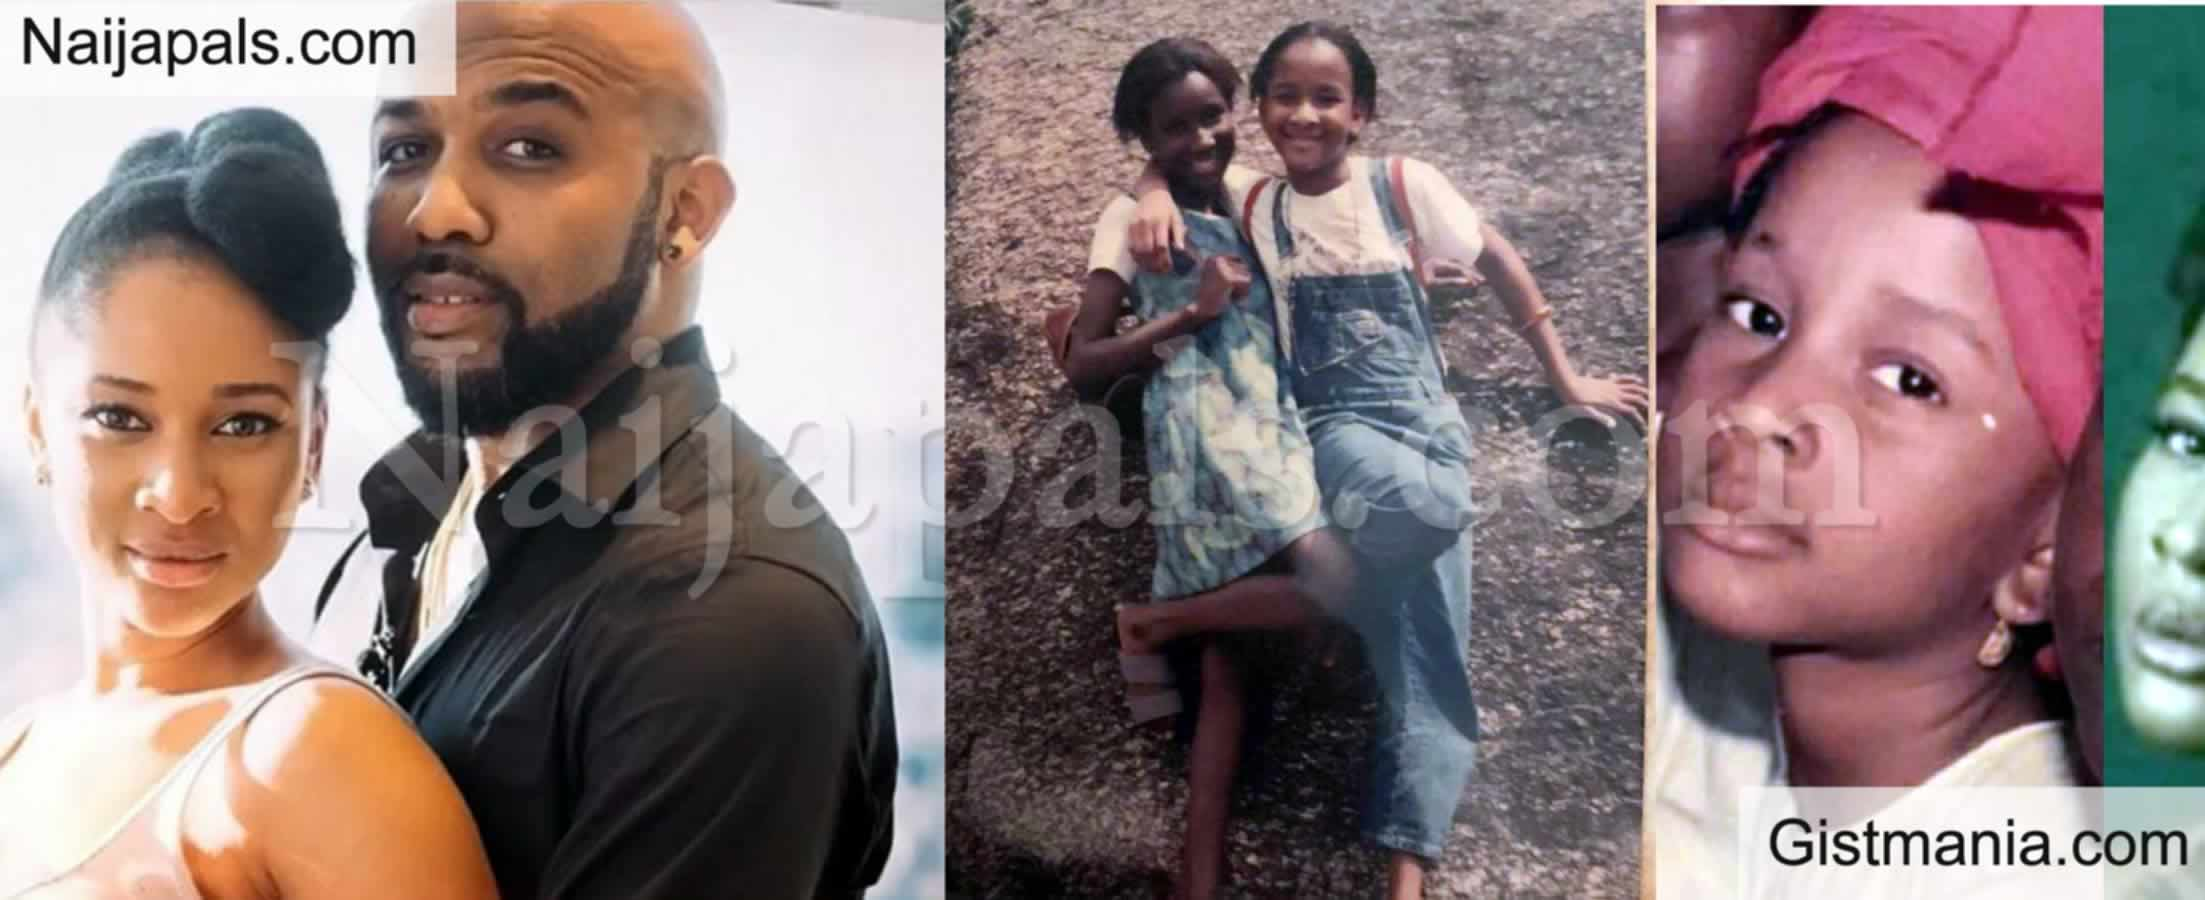 <img alt='.' class='lazyload' data-src='https://img.gistmania.com/emot/photo.png' /> Your Beauty Is Timeless! <b>Nigeria Rapper, Banky W Gushes Over Ageless Beauty Of His Wife, Adesua</b>